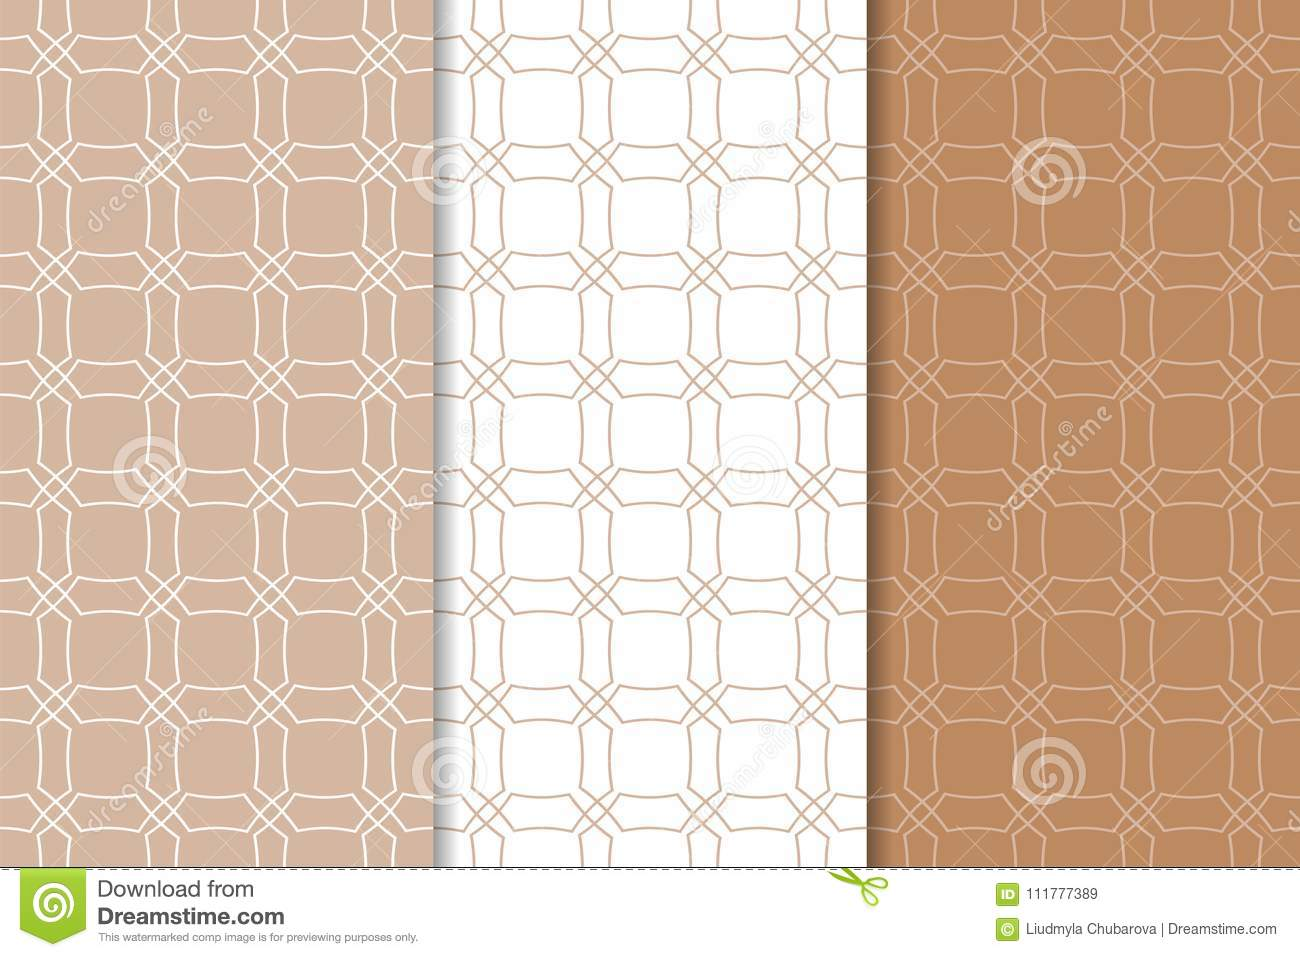 Brown and white geometric ornaments. Set of seamless patterns